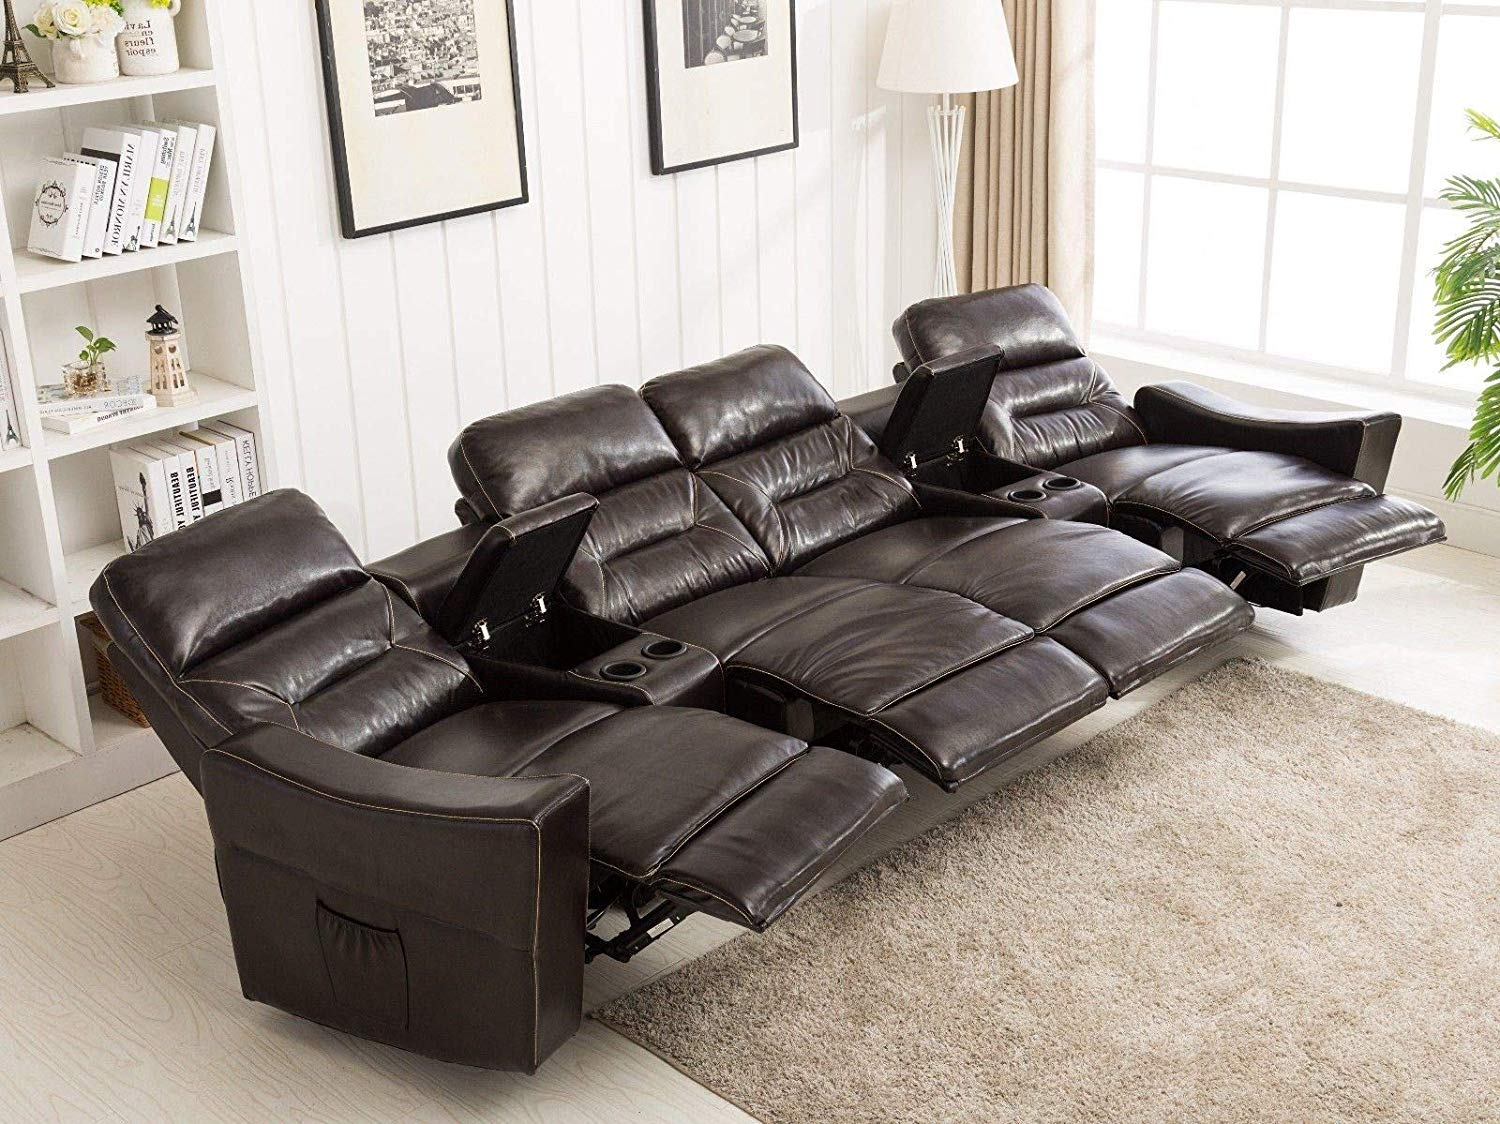 mcombo: MCombo 4-Seat Leather Home Theater Recliner Media Sofa w ...